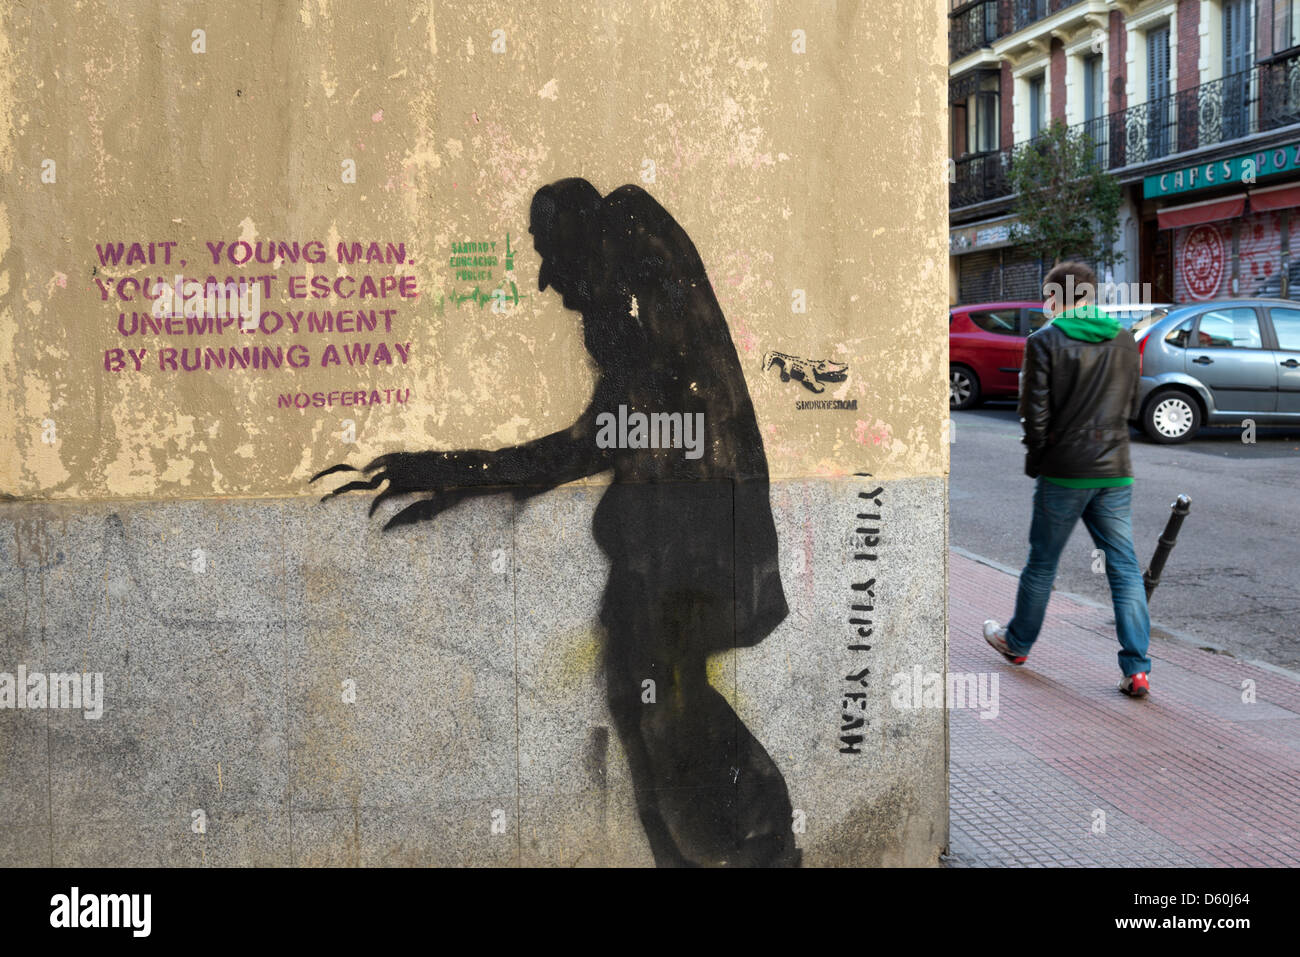 Graffiti about unemployment on a wall in Spain - Stock Image